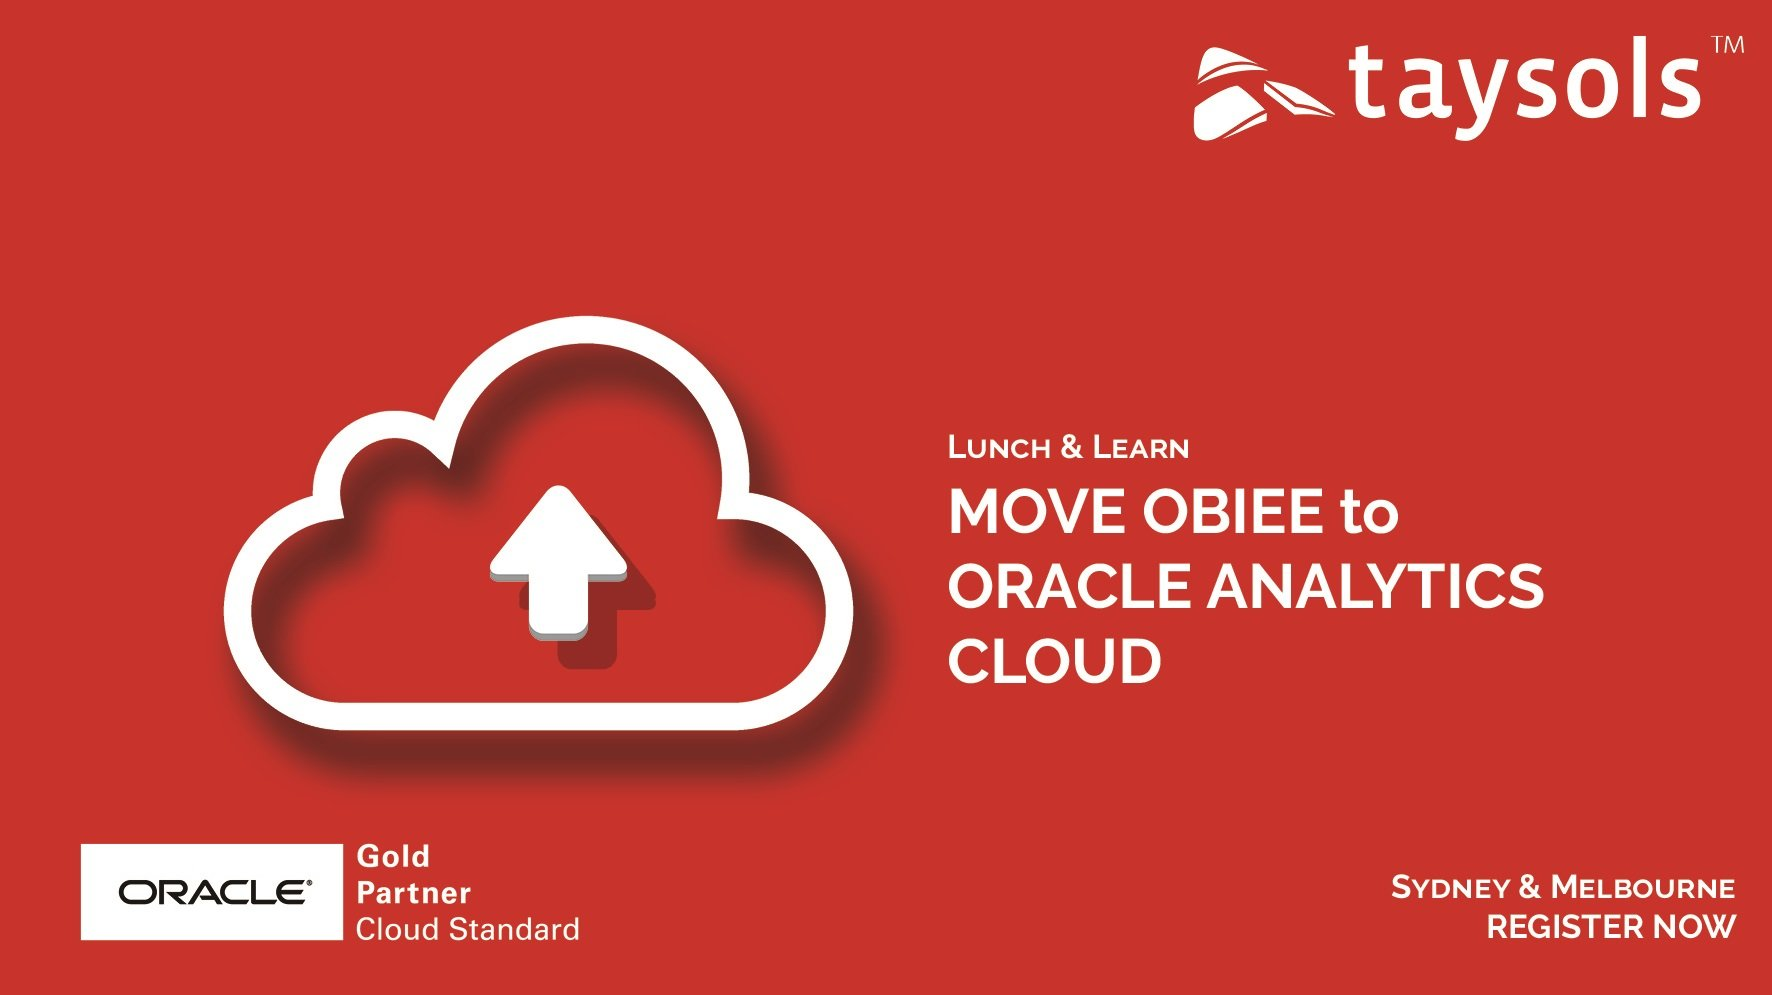 Taysols_obiee to oracle analytics cloud